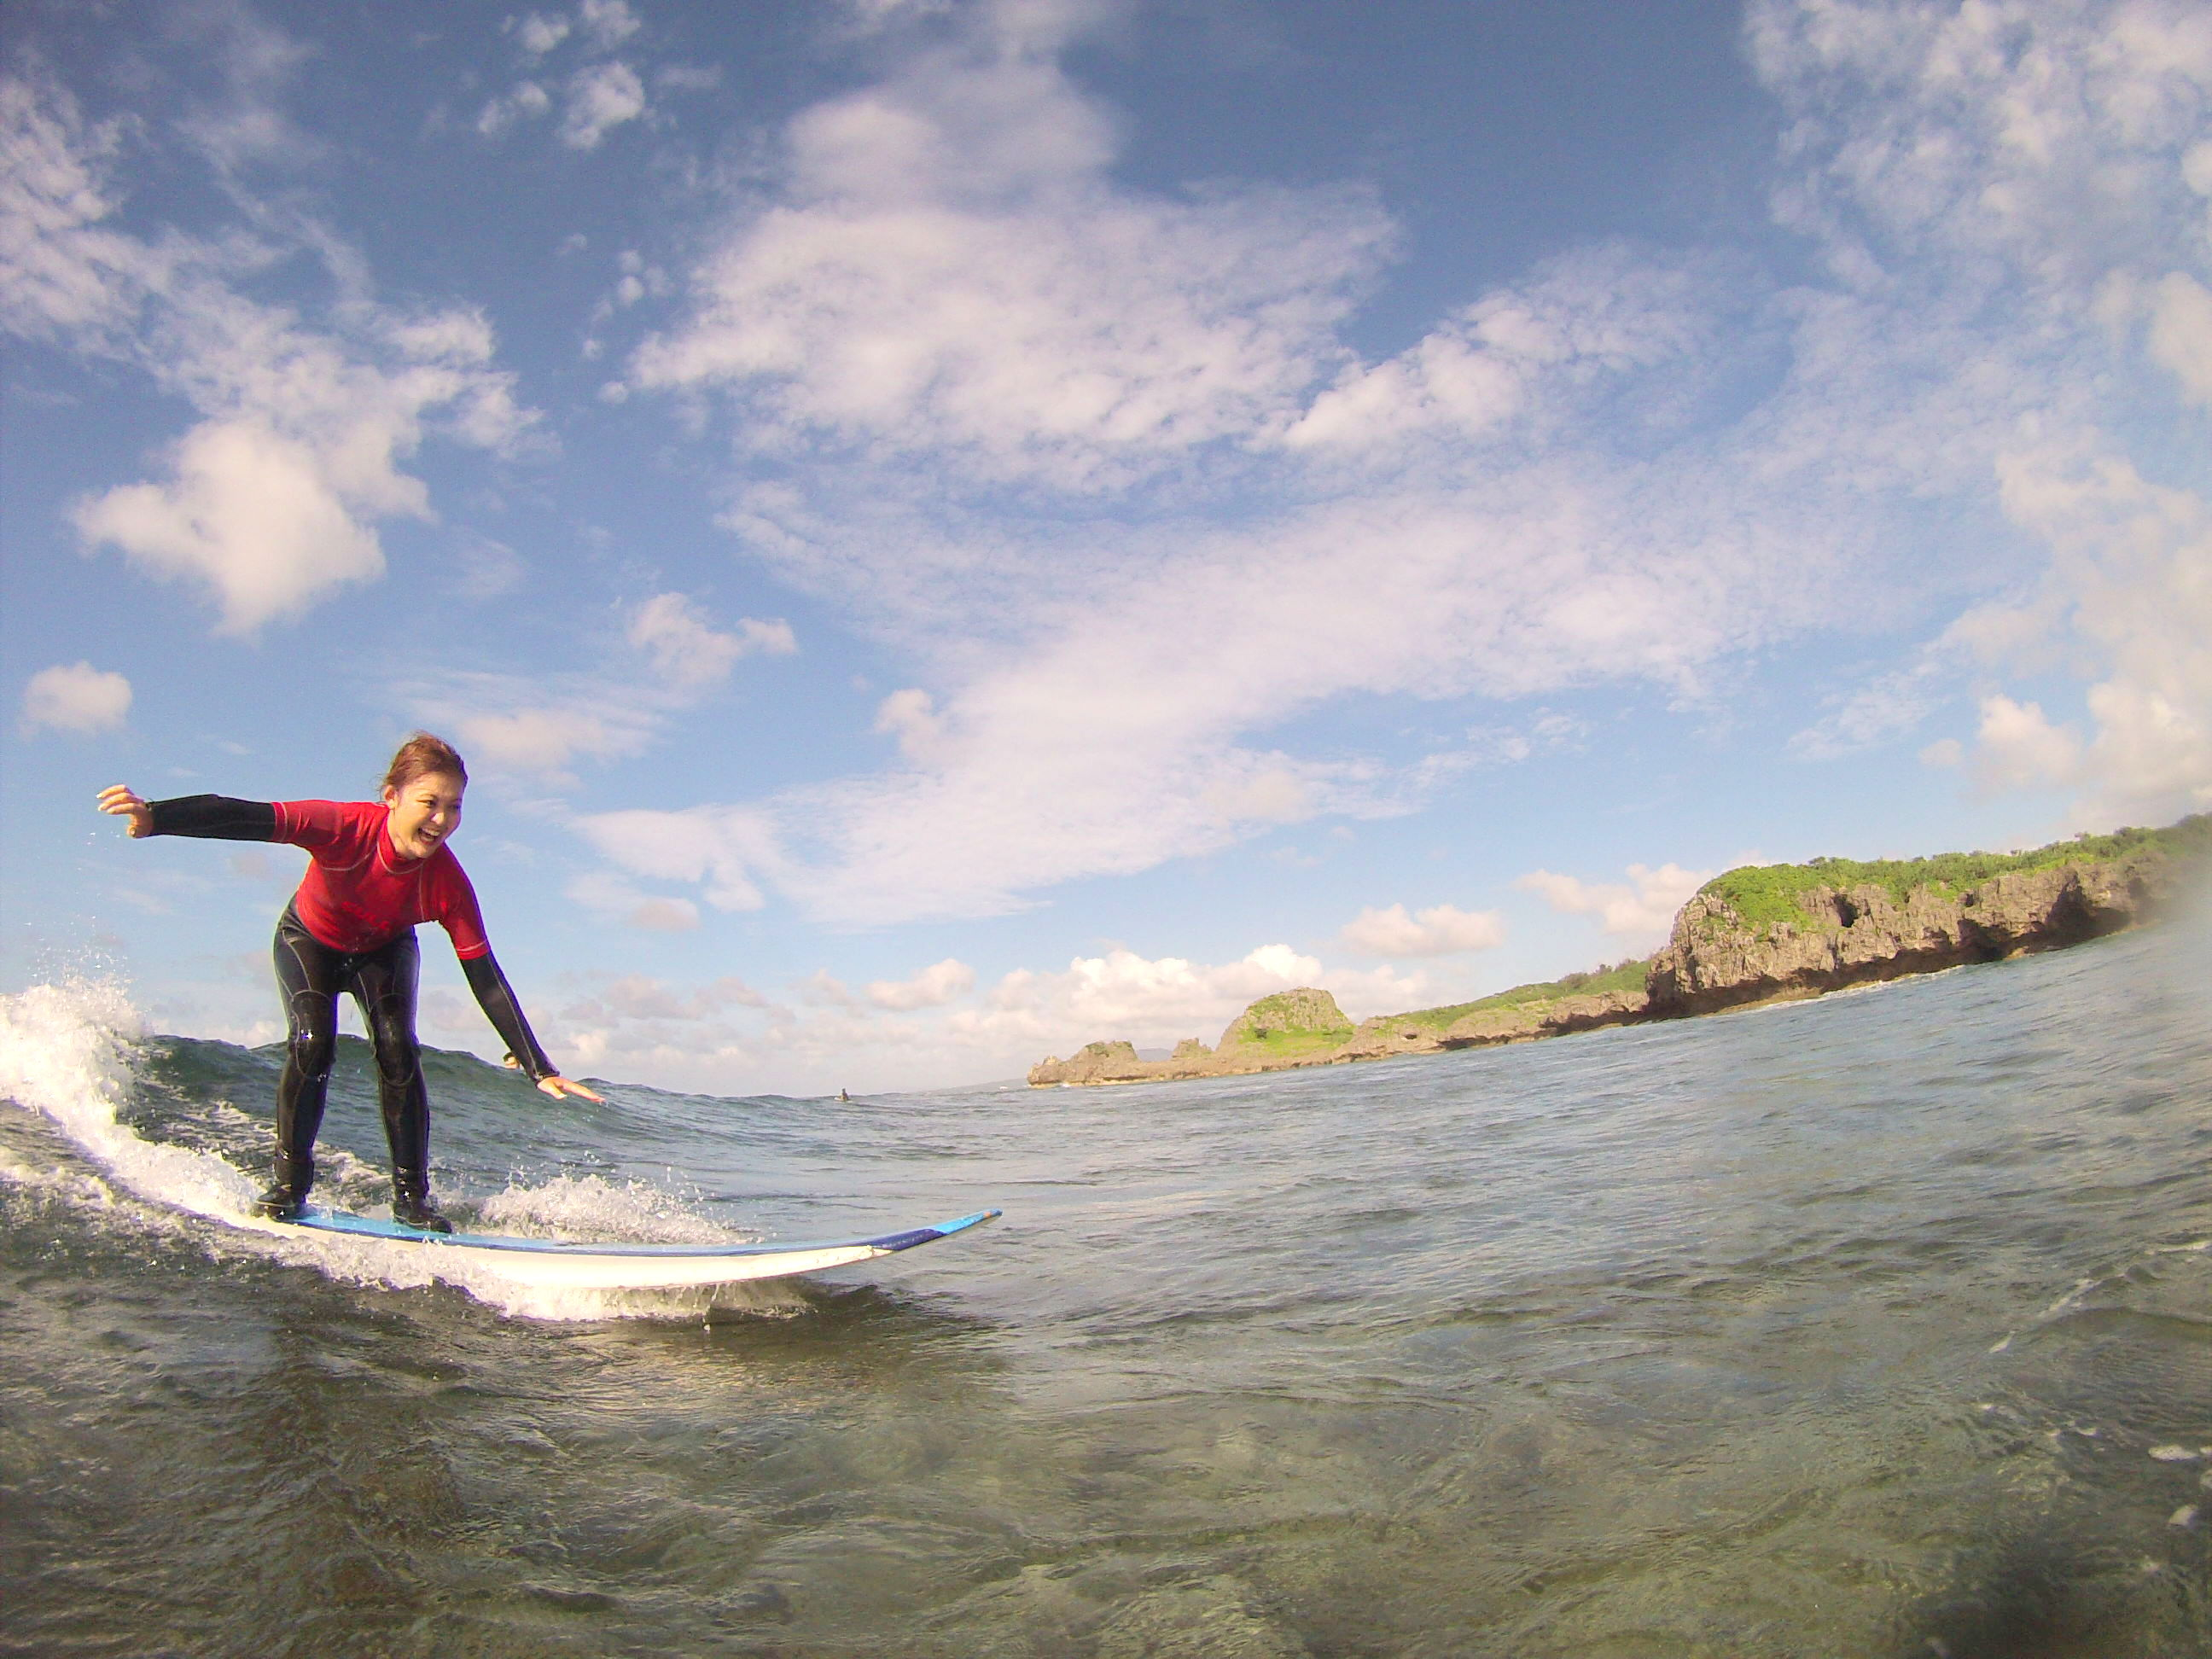 Surfing for the first time1